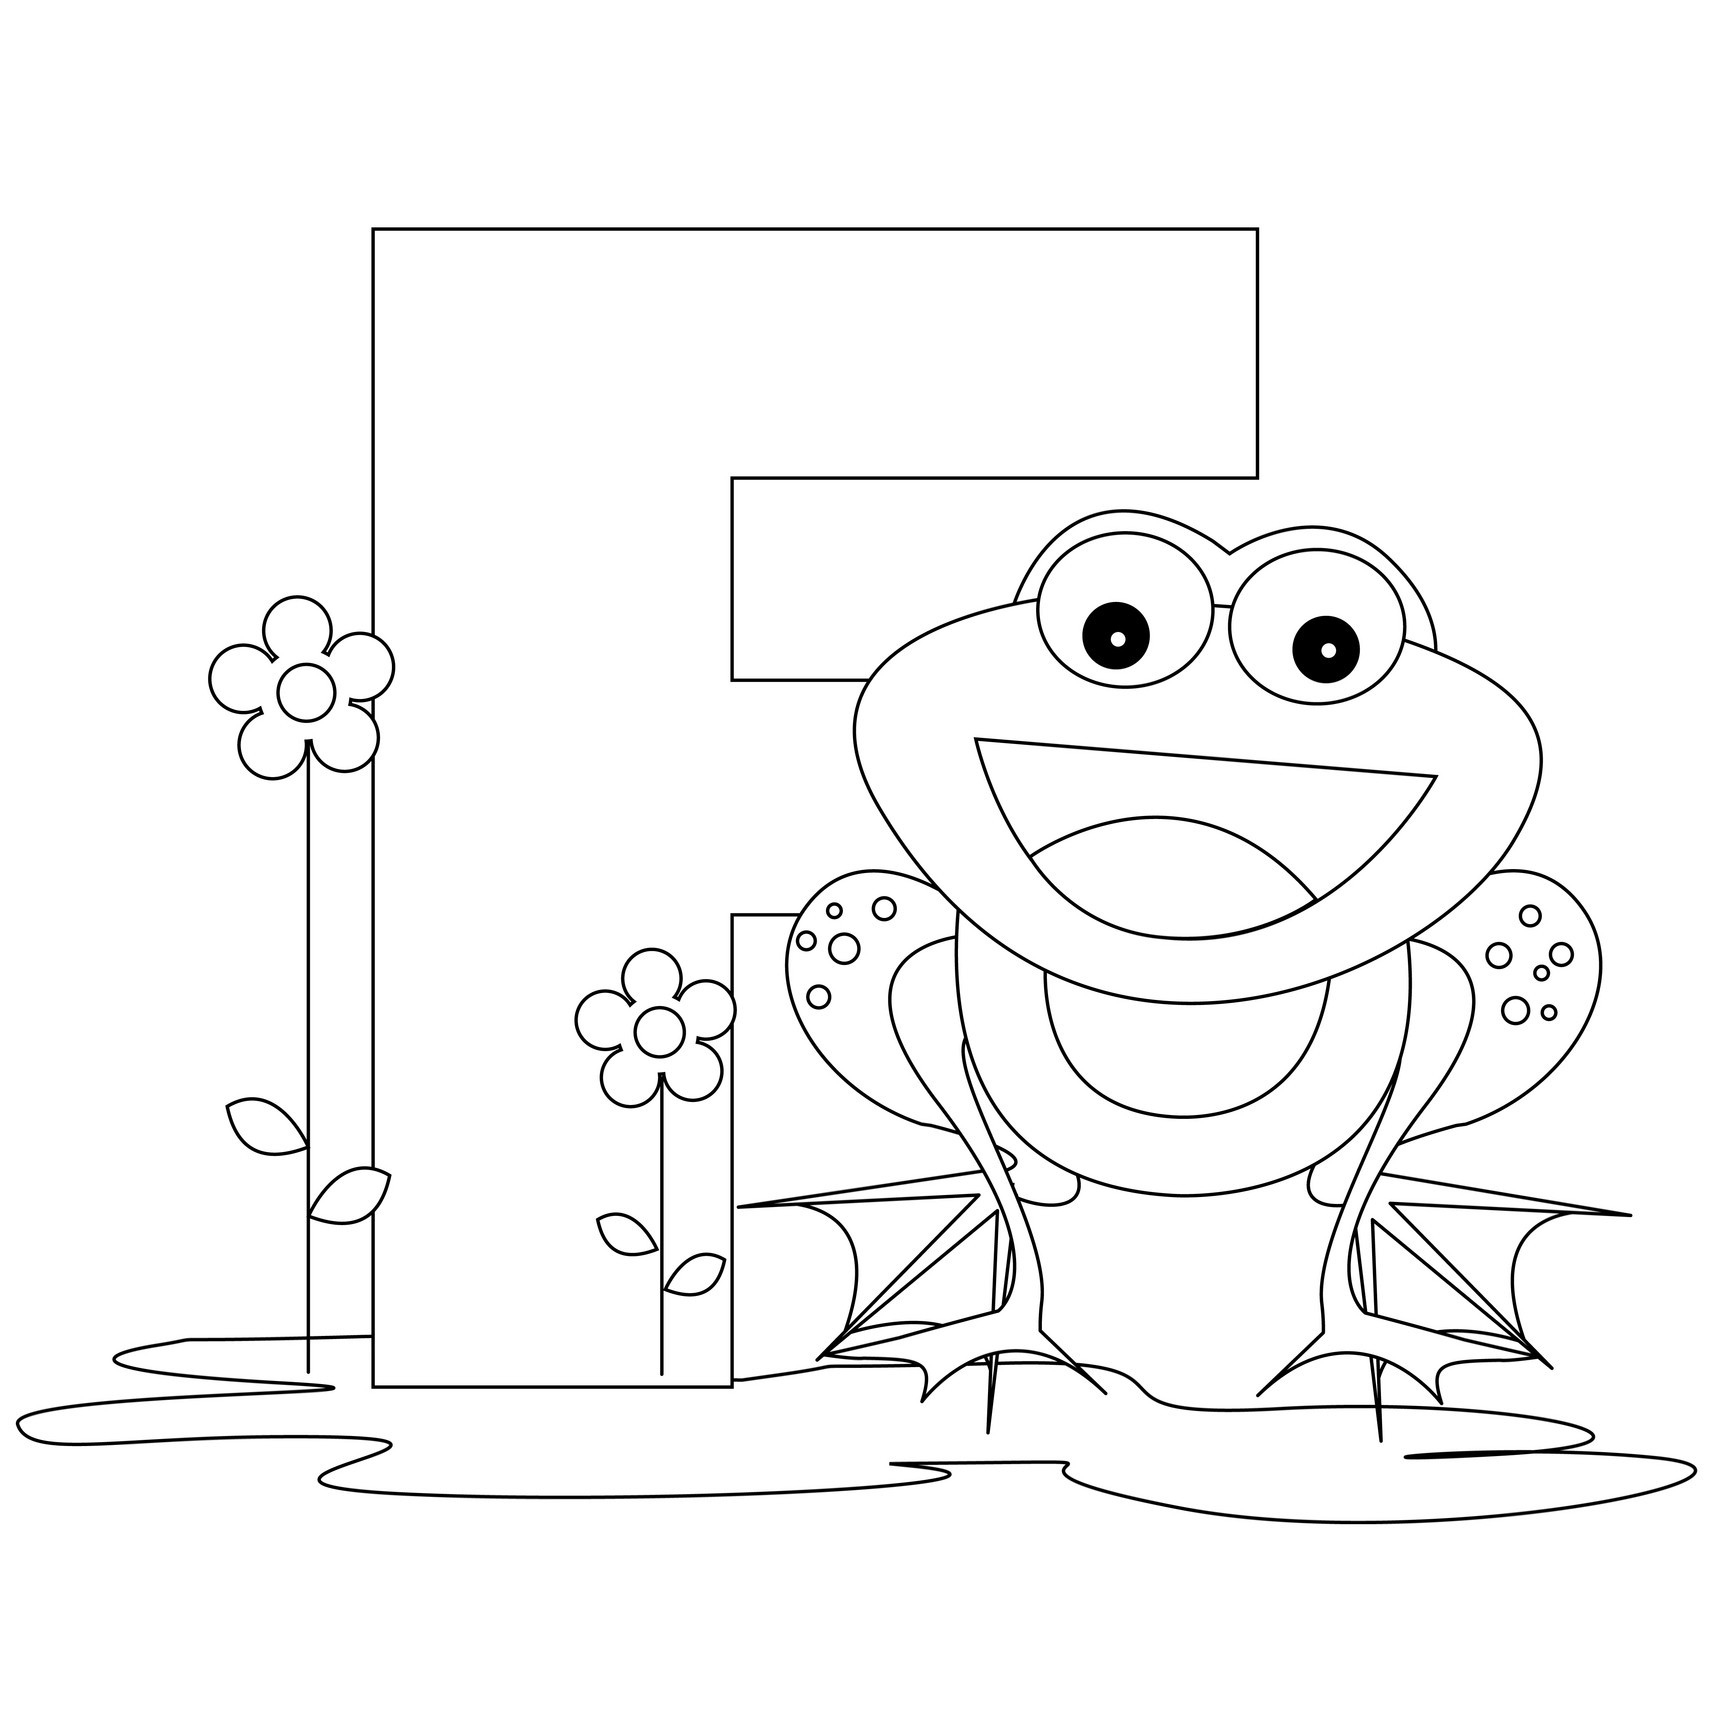 abc letters to color free printable alphabet coloring pages for kids best letters to color abc